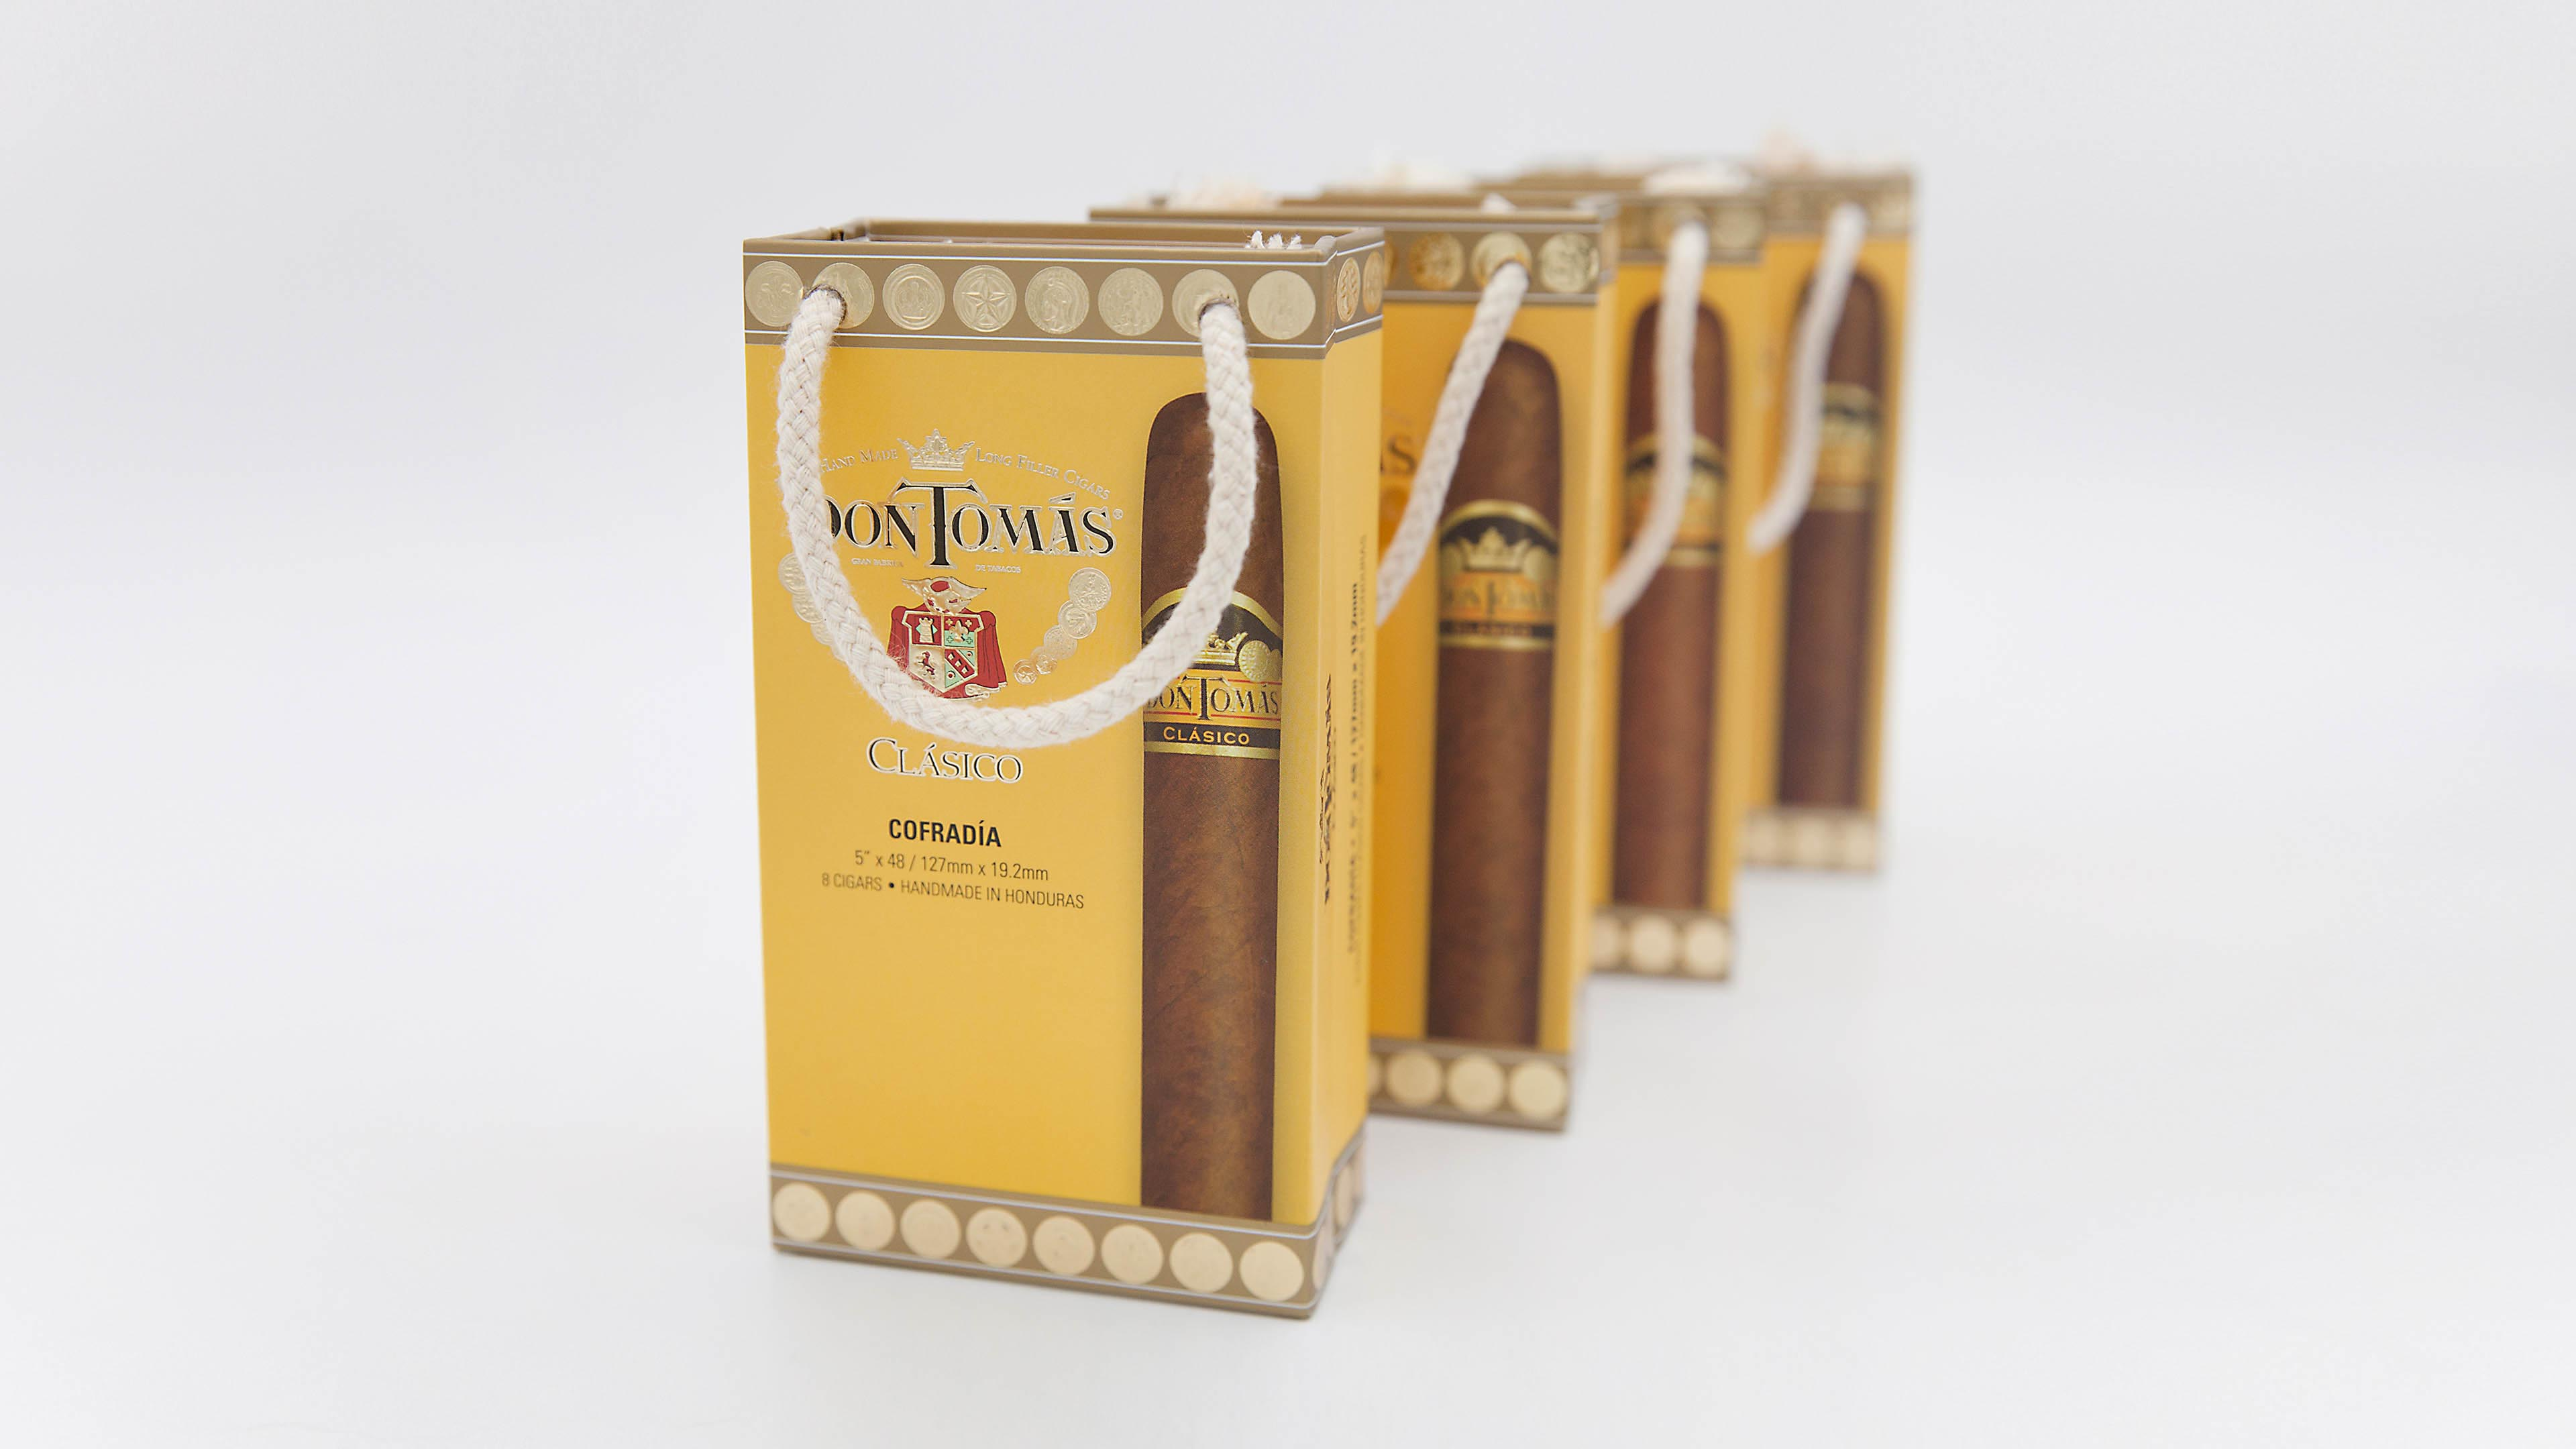 Luxury Cigar Packaging - Don Tomas Clasico - Cigar Boxes